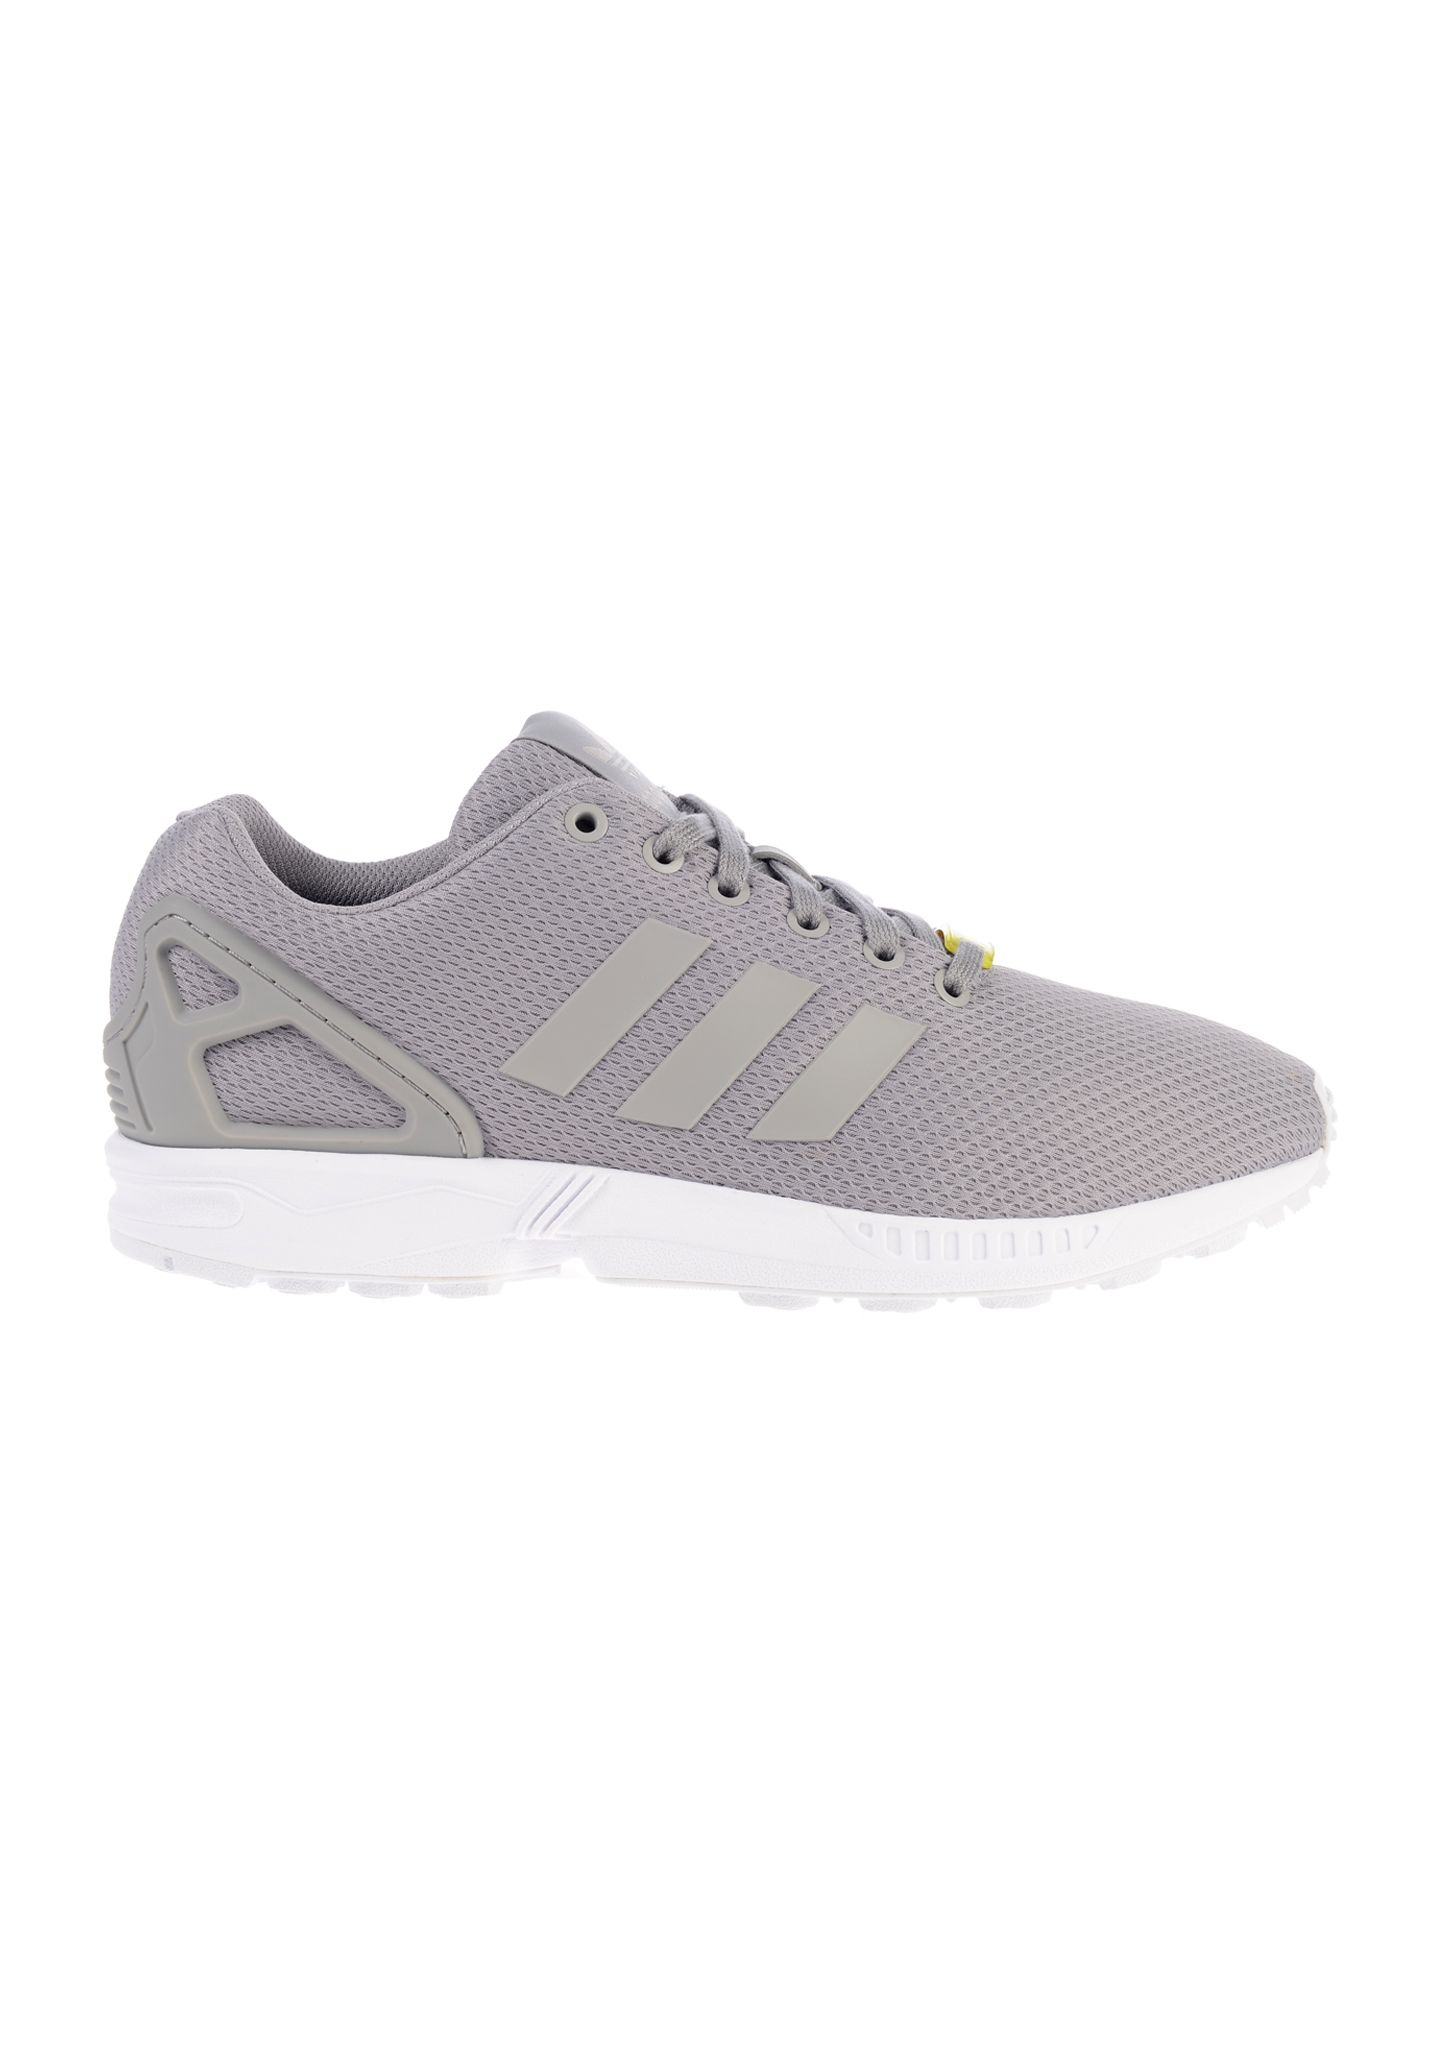 a5e893d24126e adidas Originals ZX Flux - Sneaker - Grau - Planet Sports